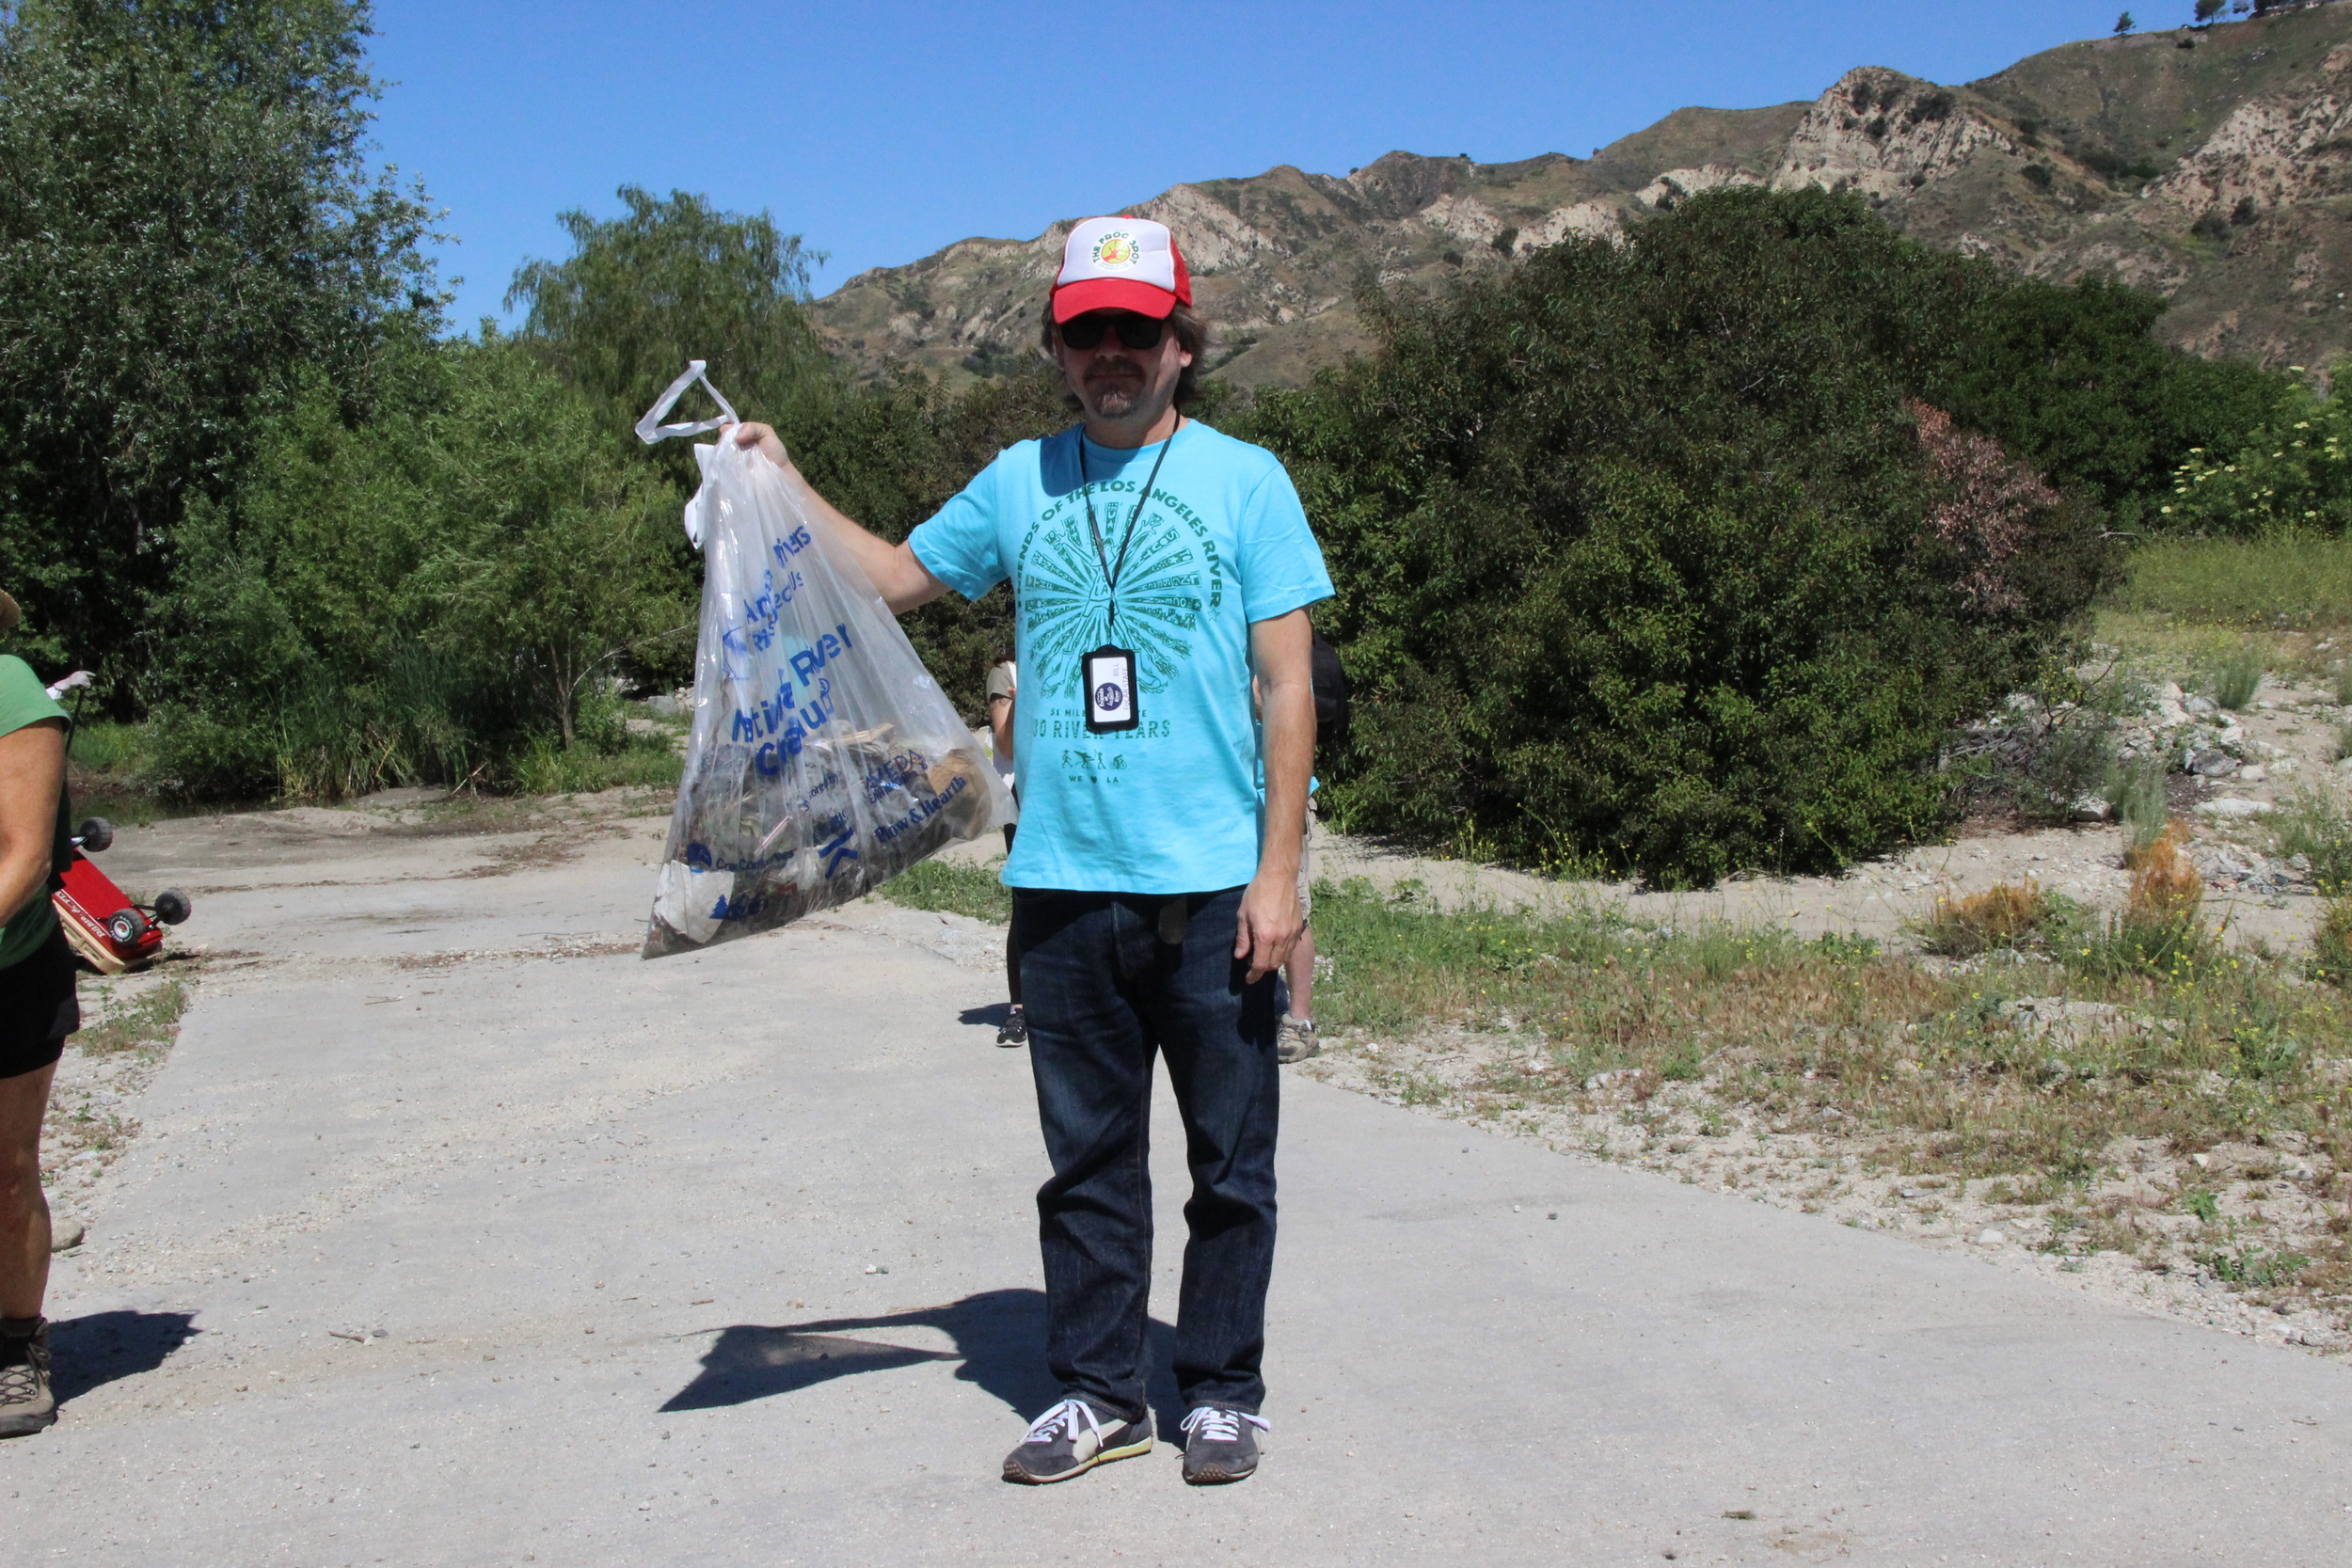 Saturday, April 16, 2016 Friends of the Los Angeles River – The Great LA River Cleanup Tujunga Wash @ Haines Canyon Channel